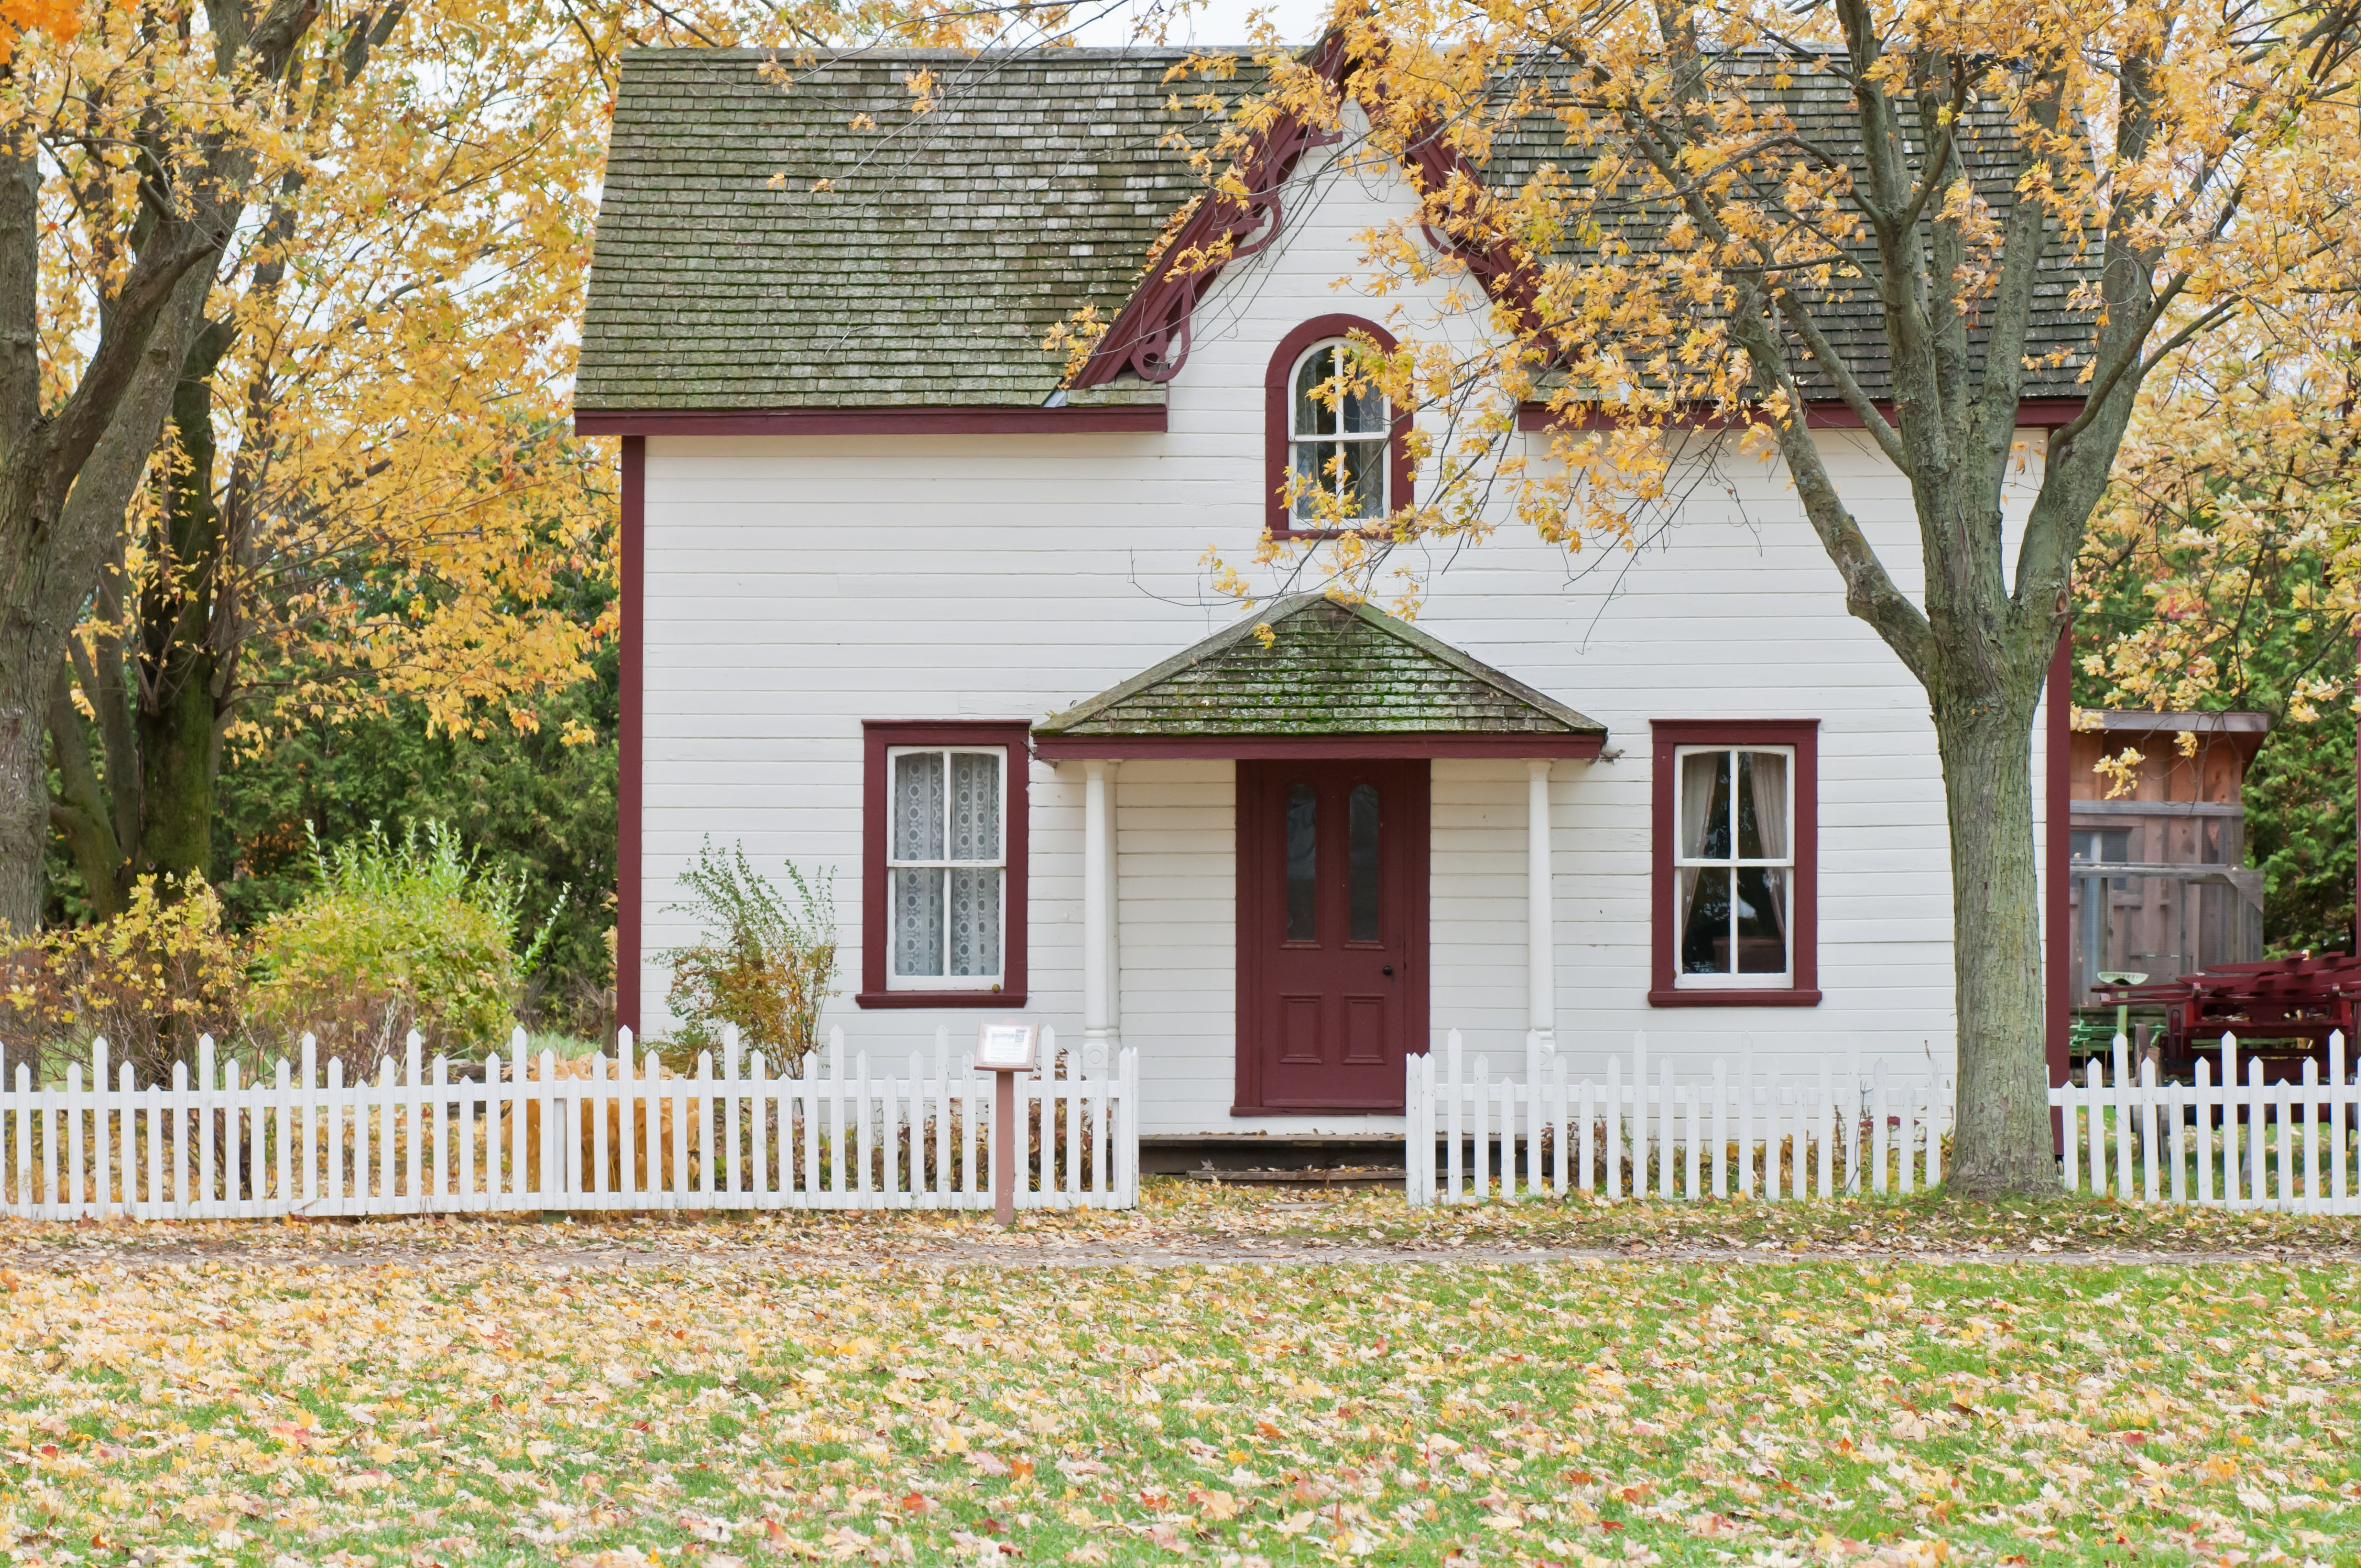 A small white house surrounded by trees in the autumn